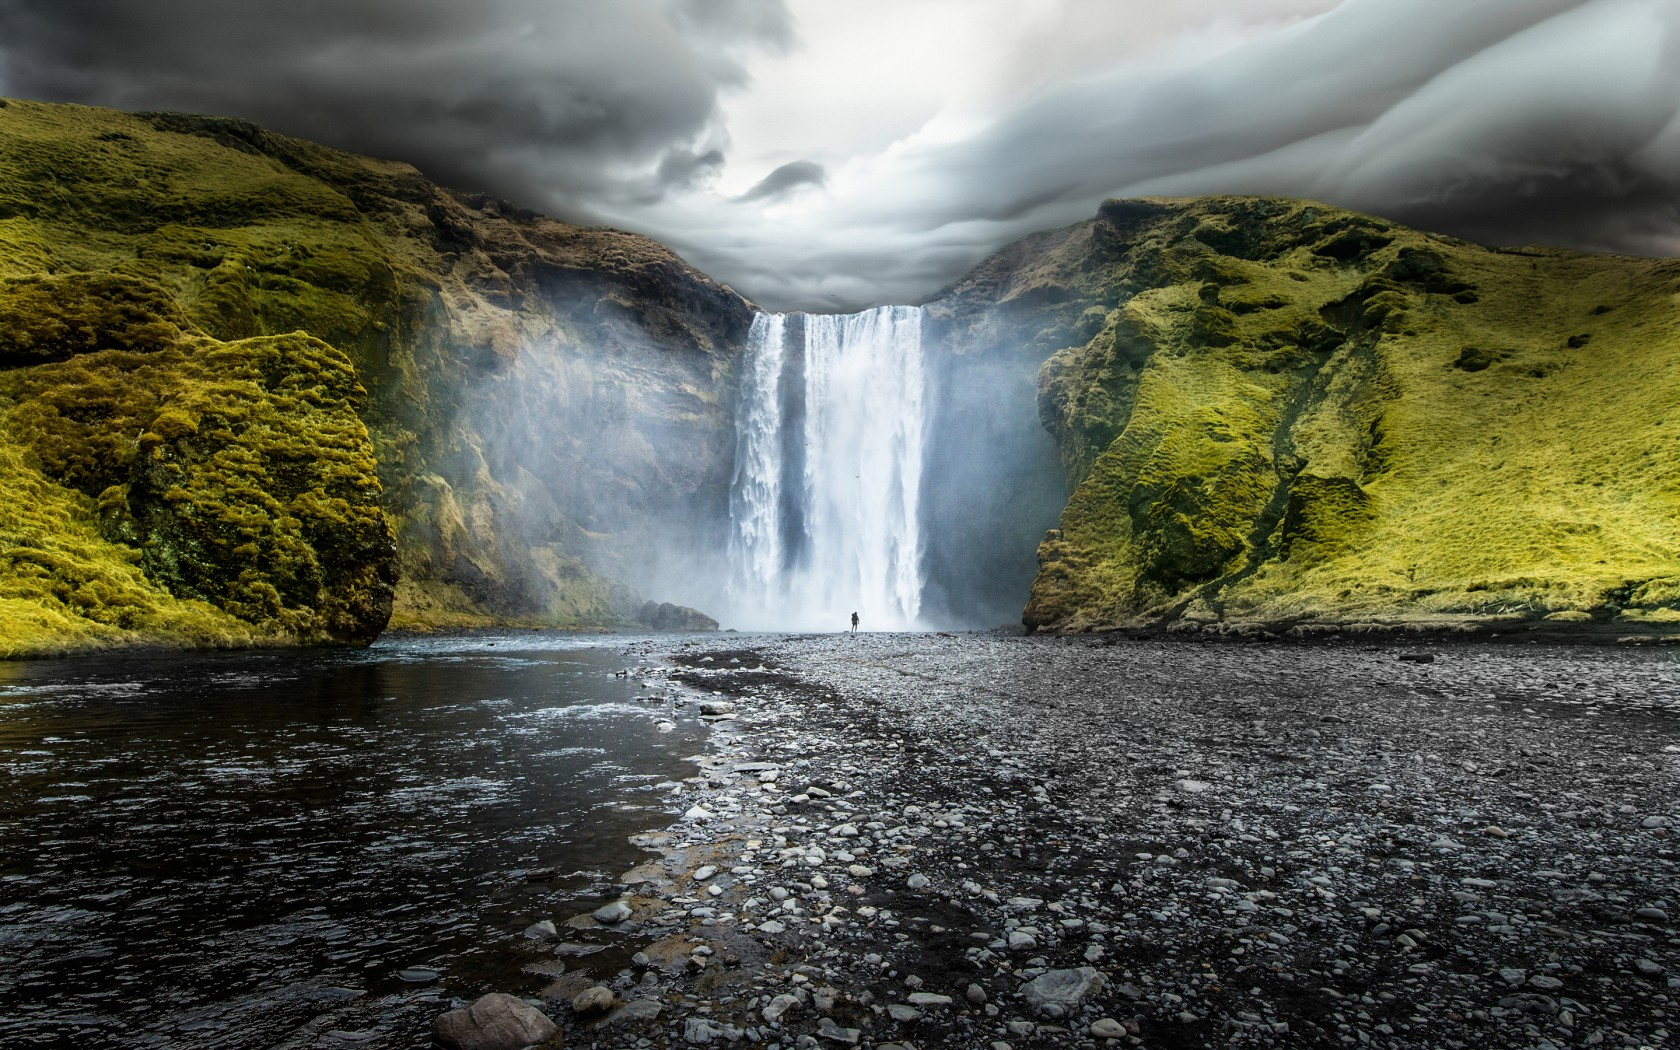 Hd Sports Wallpapers For Iphone Skogafoss Waterfalls Iceland Wallpapers Hd Wallpapers